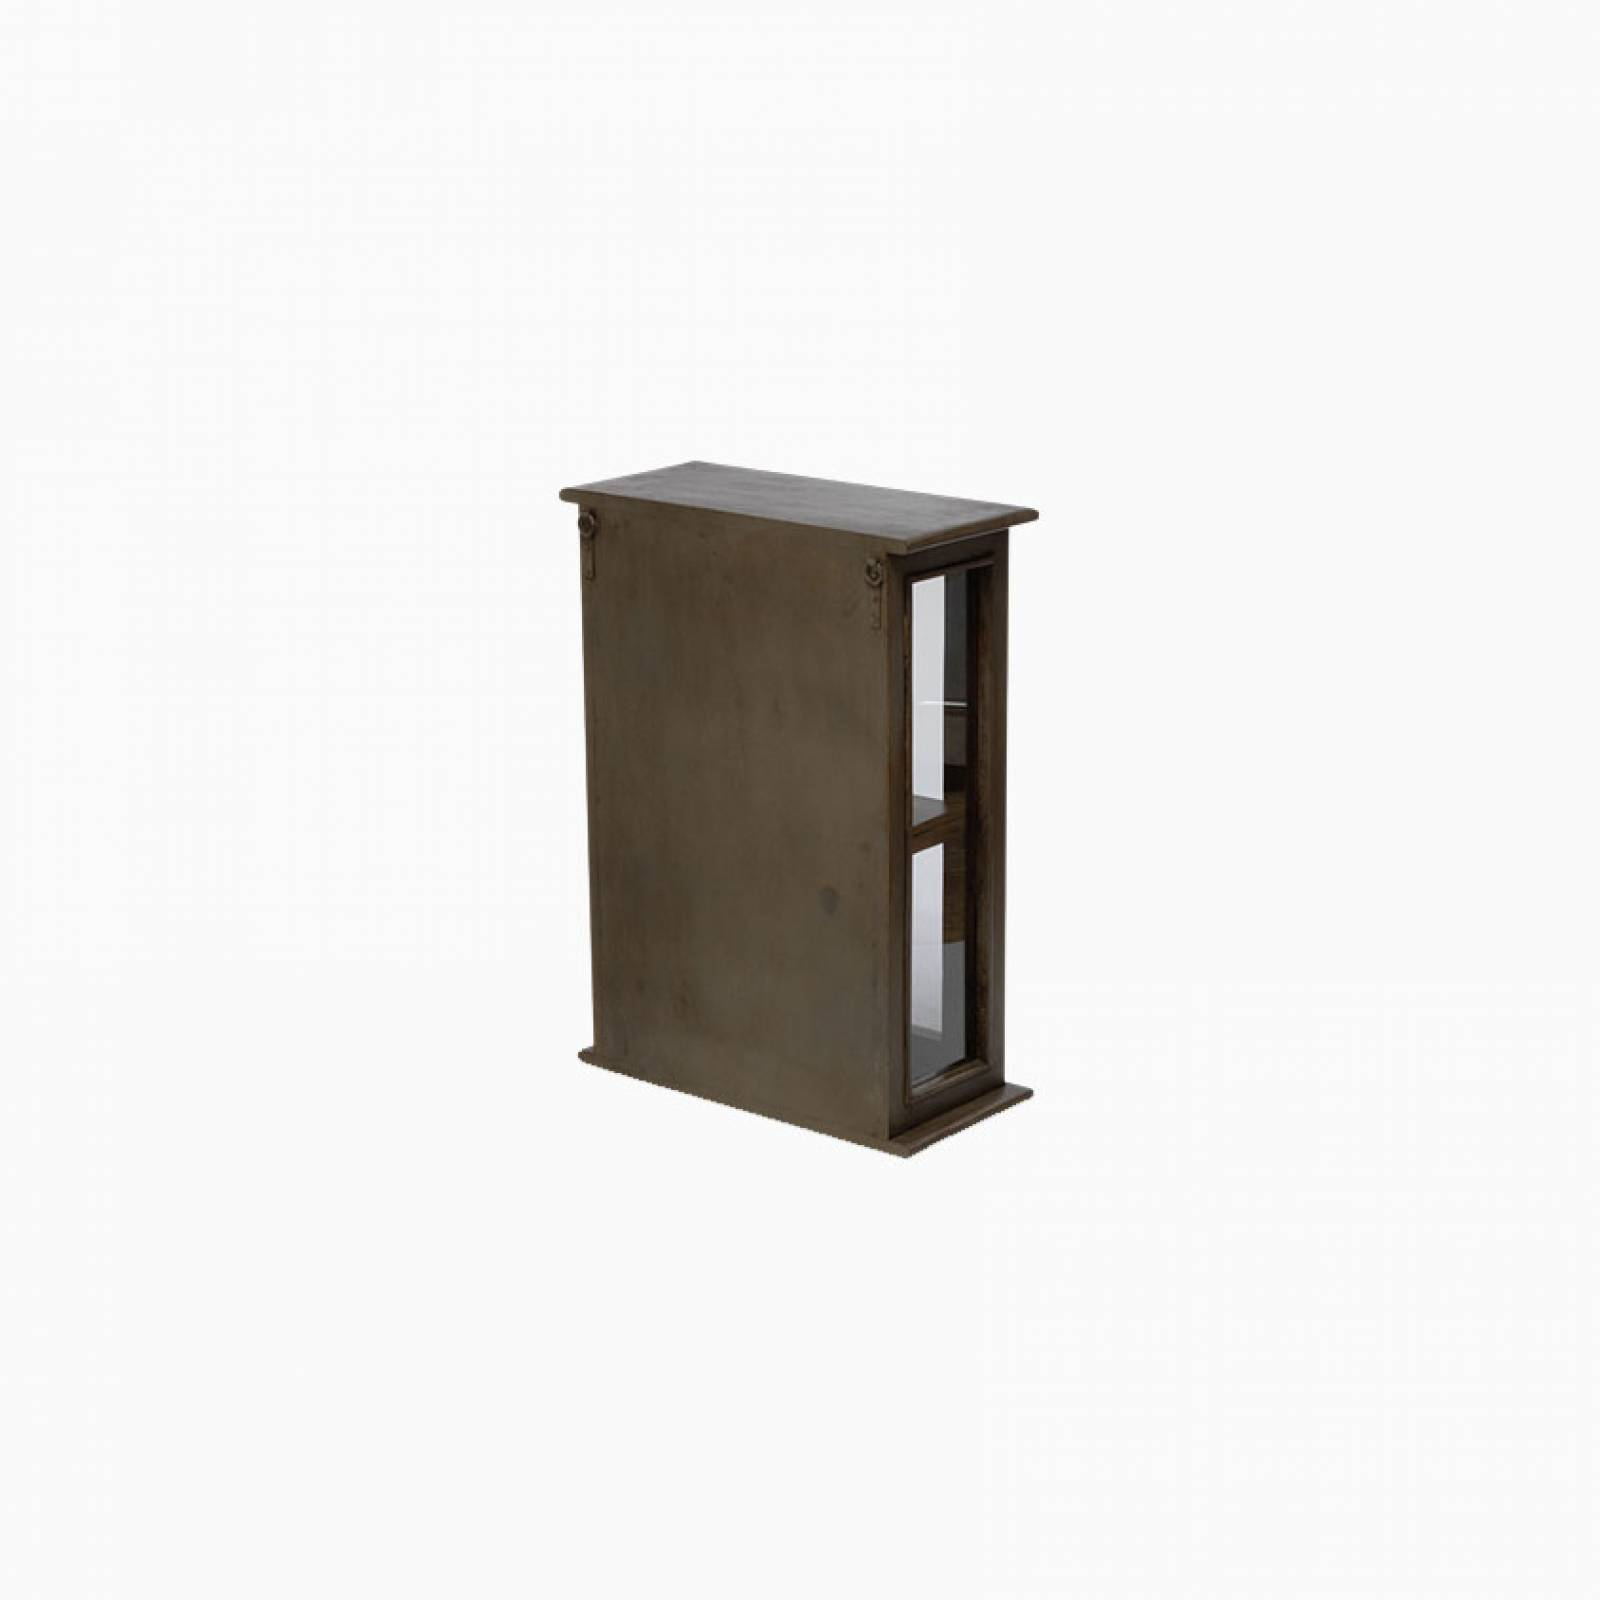 Amiri Wood And Metal Wall Cabinet thumbnails